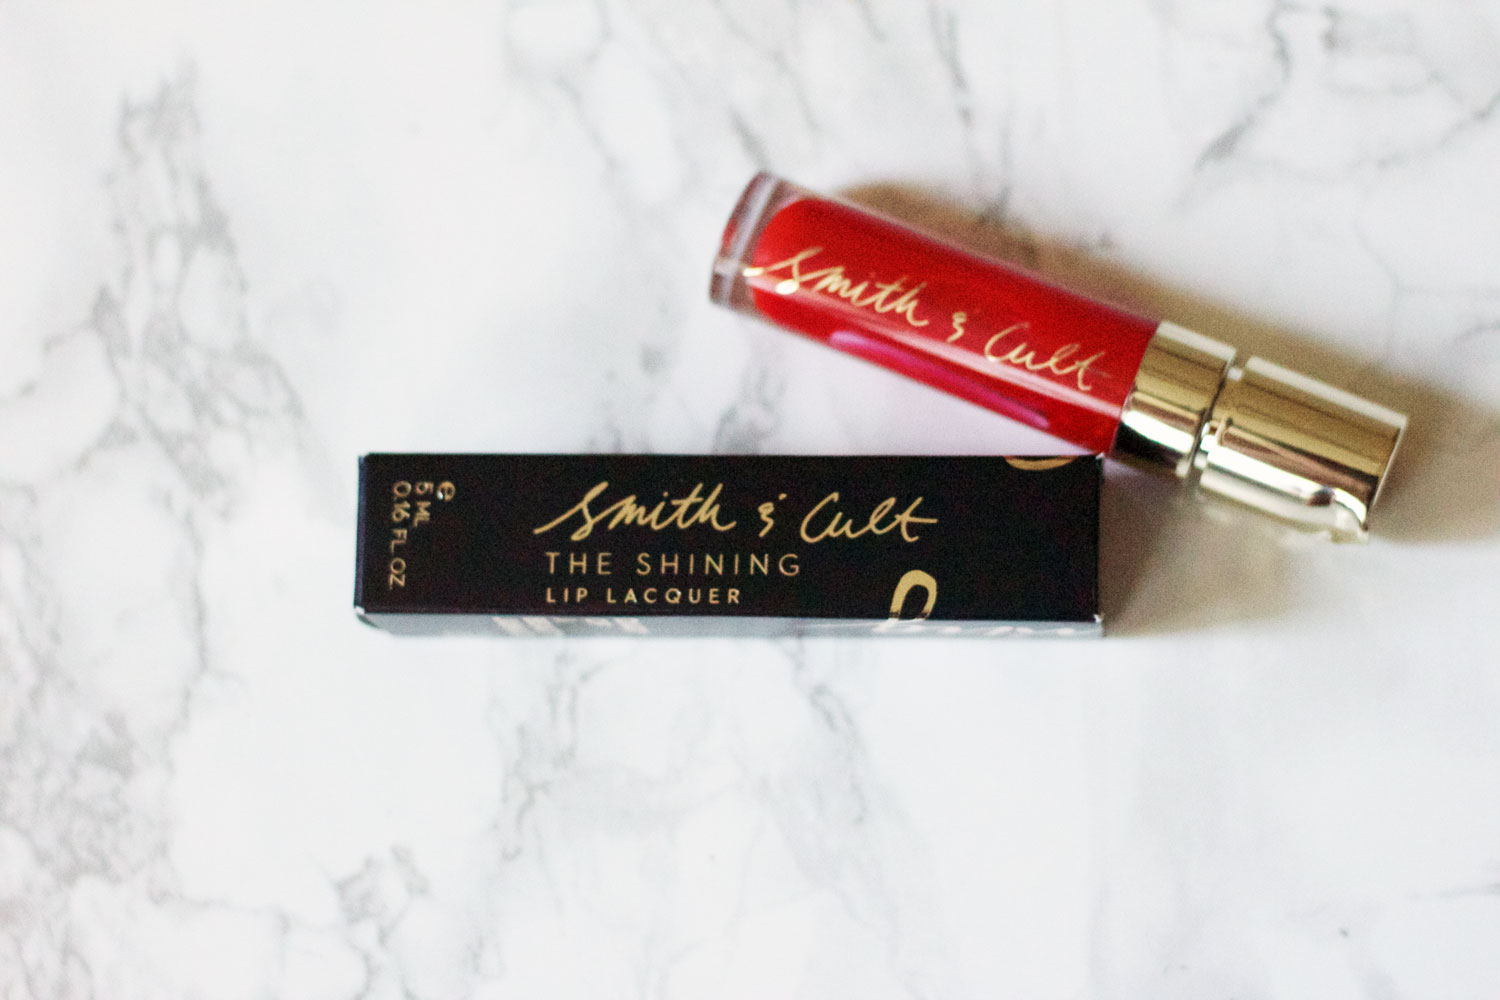 SMITH & CULT Lip Laquer in The Warning : I've been a fan of this brand for awhile now ever since I started using their nail polish, so when I saw a lip product from them to try, I of course was super excited. This will be a great go-to during the holidays!